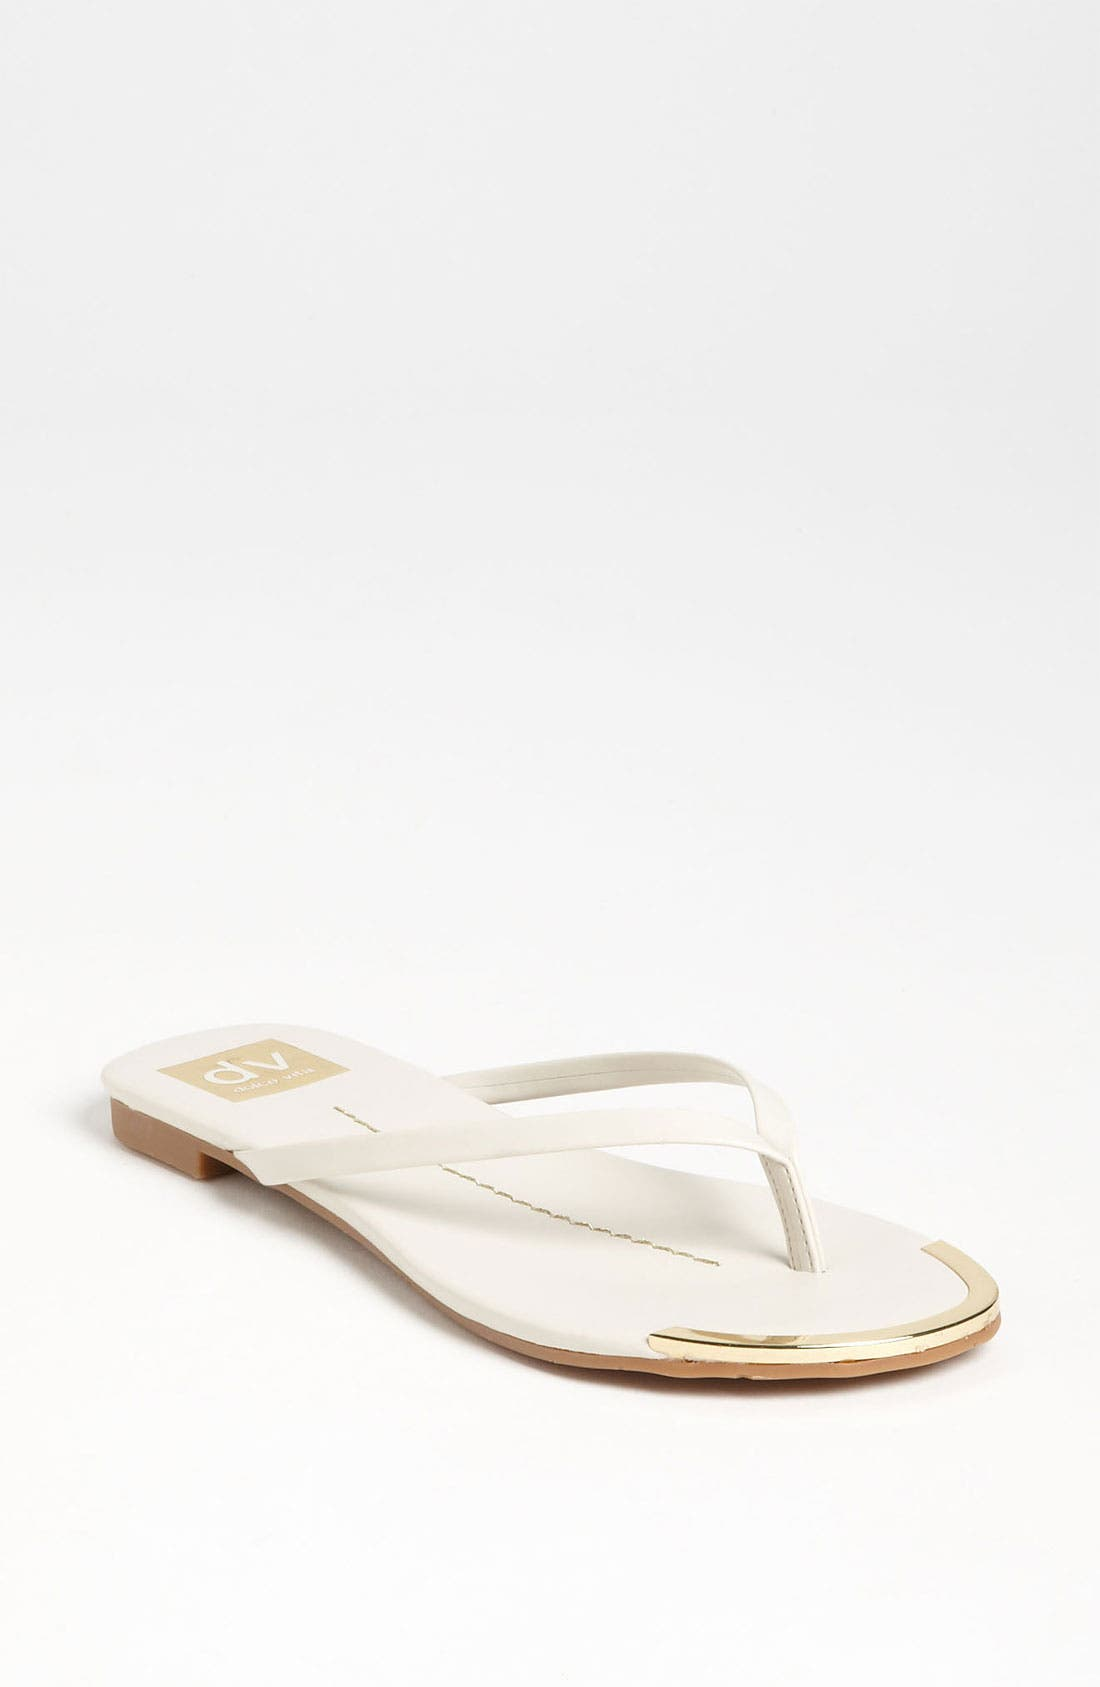 Alternate Image 1 Selected - DV by Dolce Vita 'Dania' Sandal